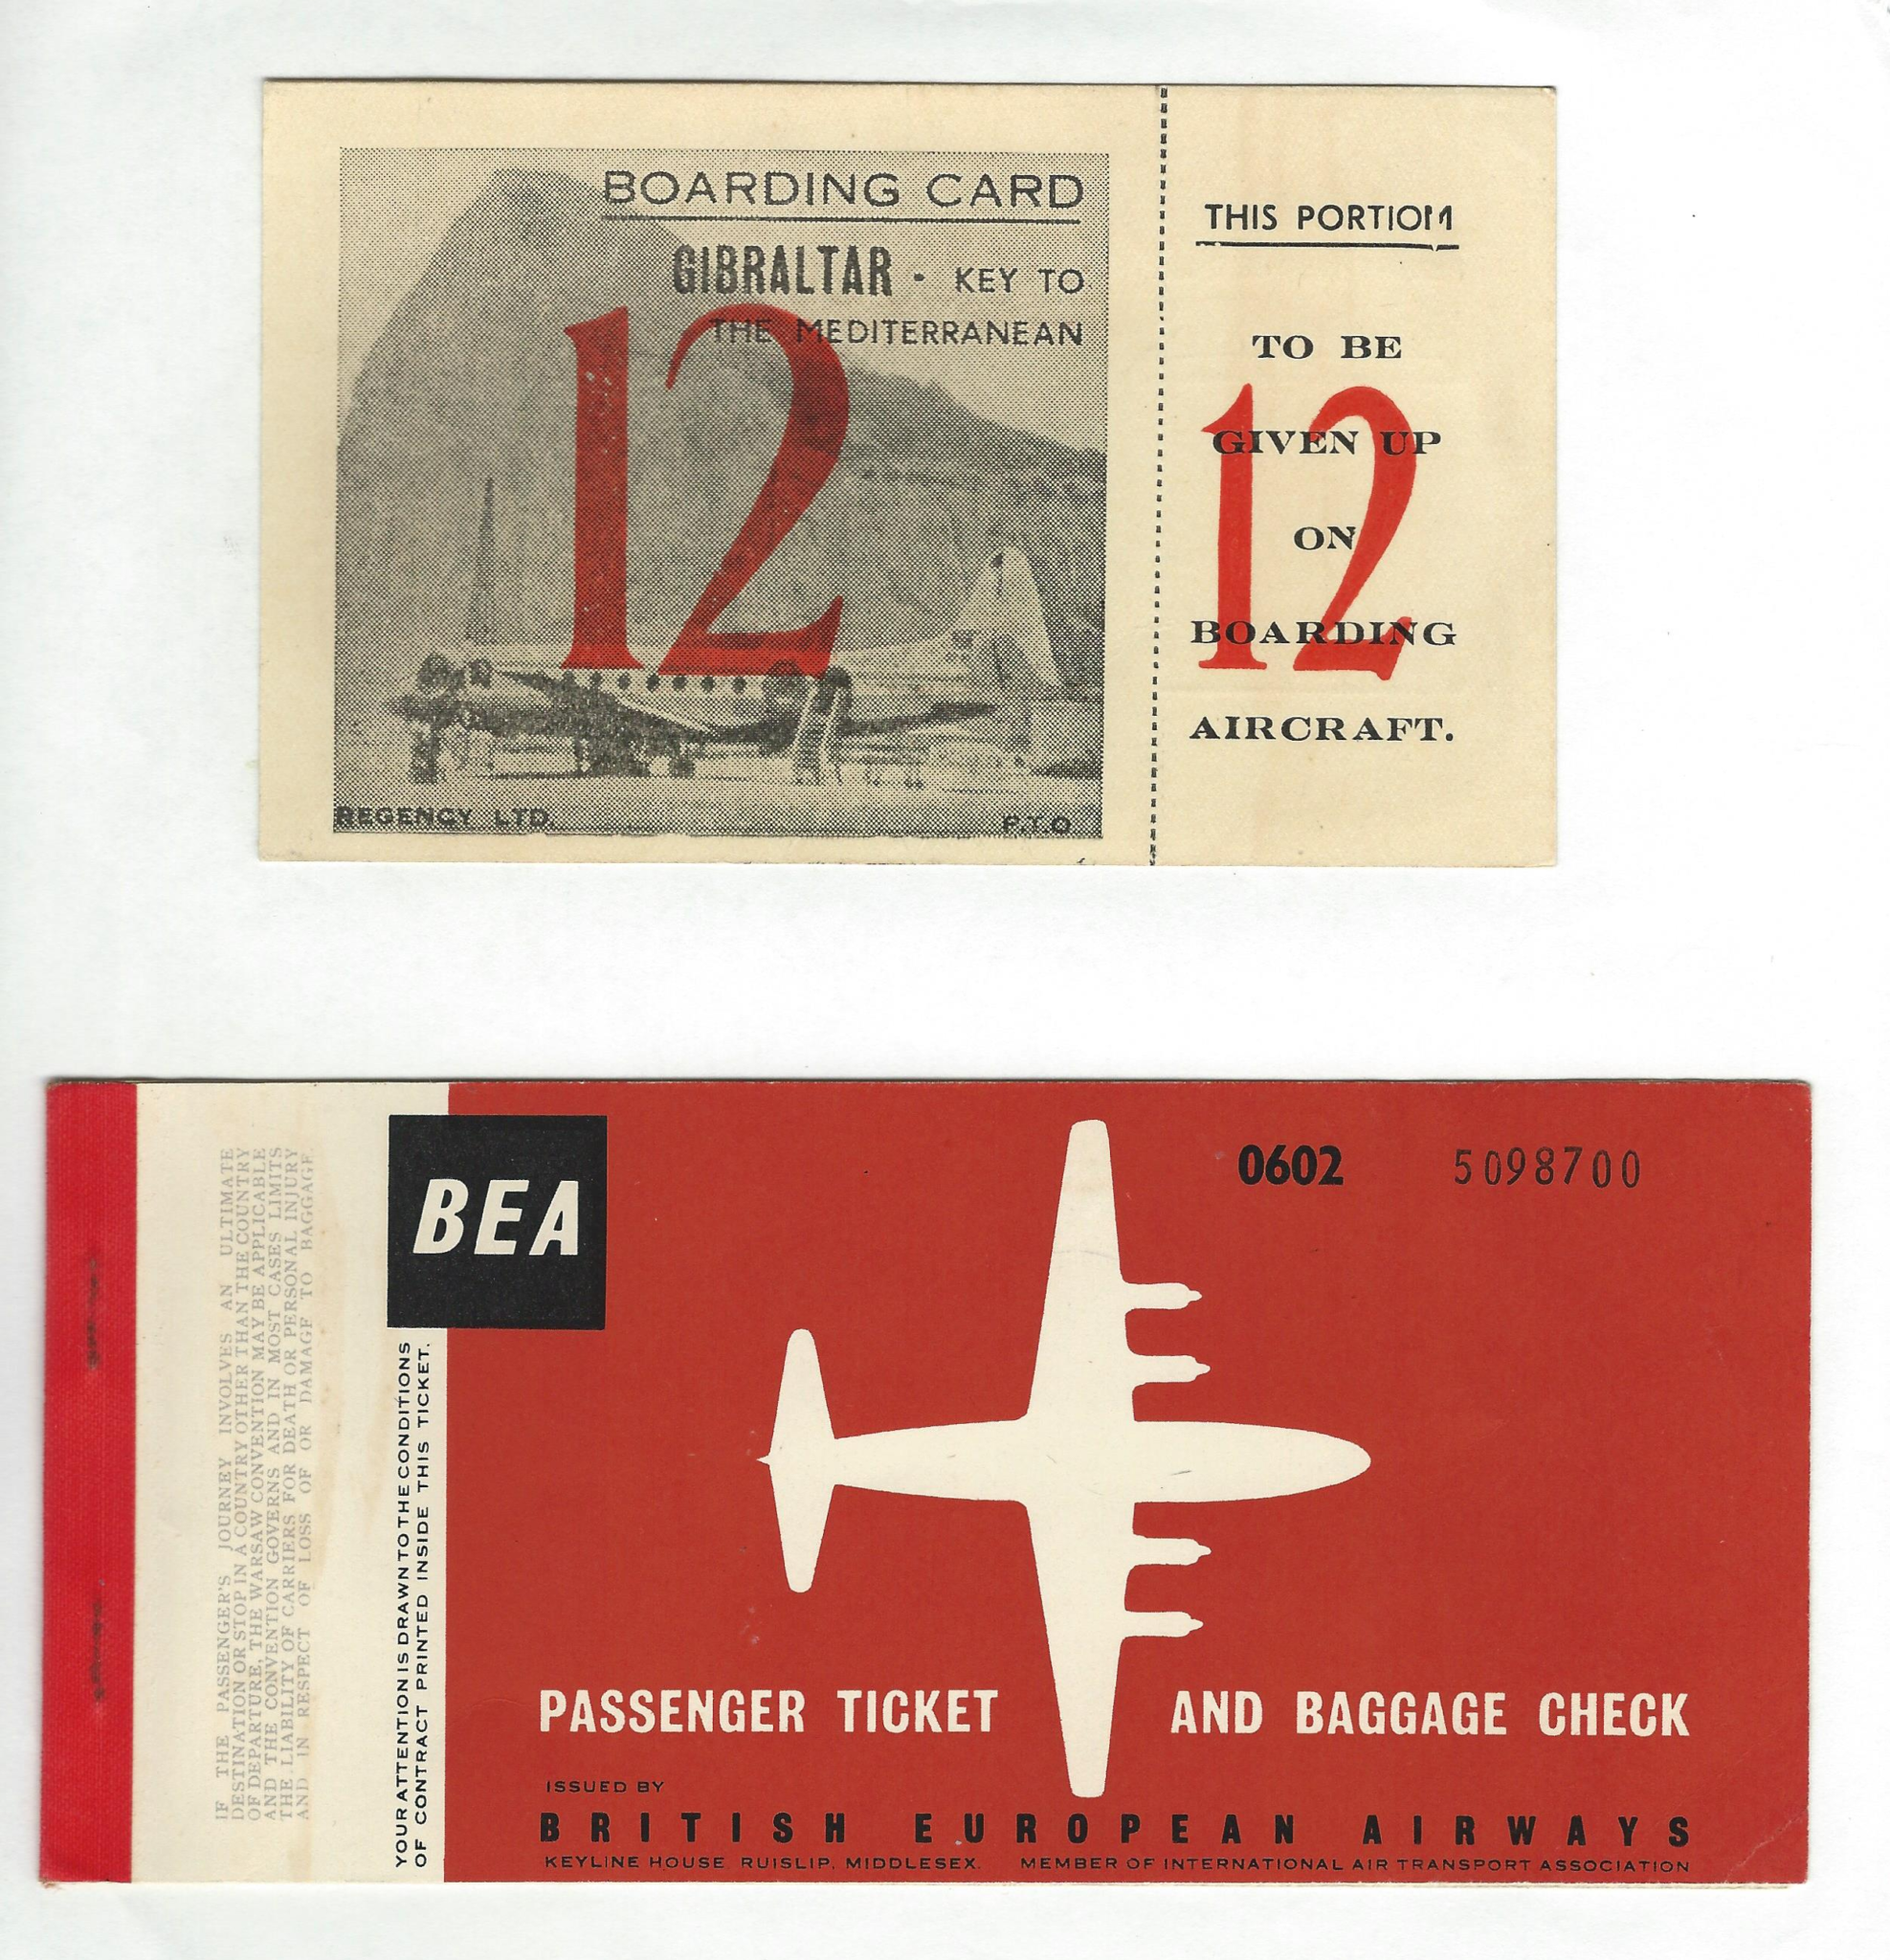 BEA British European Airways passenger ticket and boarding pass